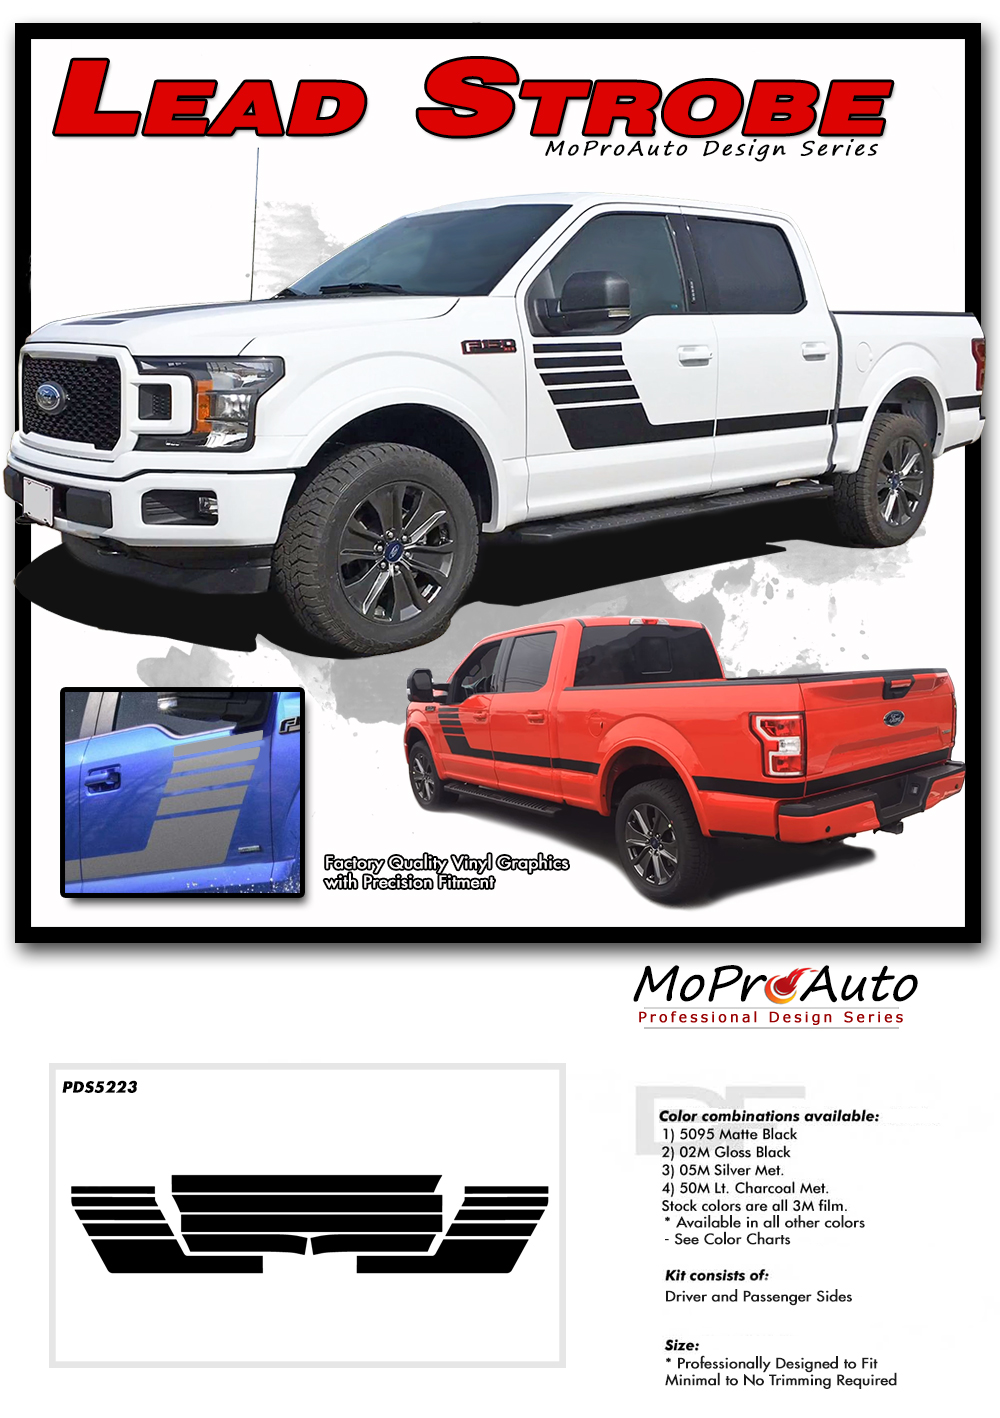 LEAD FOOT STROBE Special Edition 2015 2016 2017 2018 Ford F-Series F-150 Hockey Stick Appearance Package Vinyl Graphics and Decals Kit by MoProAuto Pro Design Series